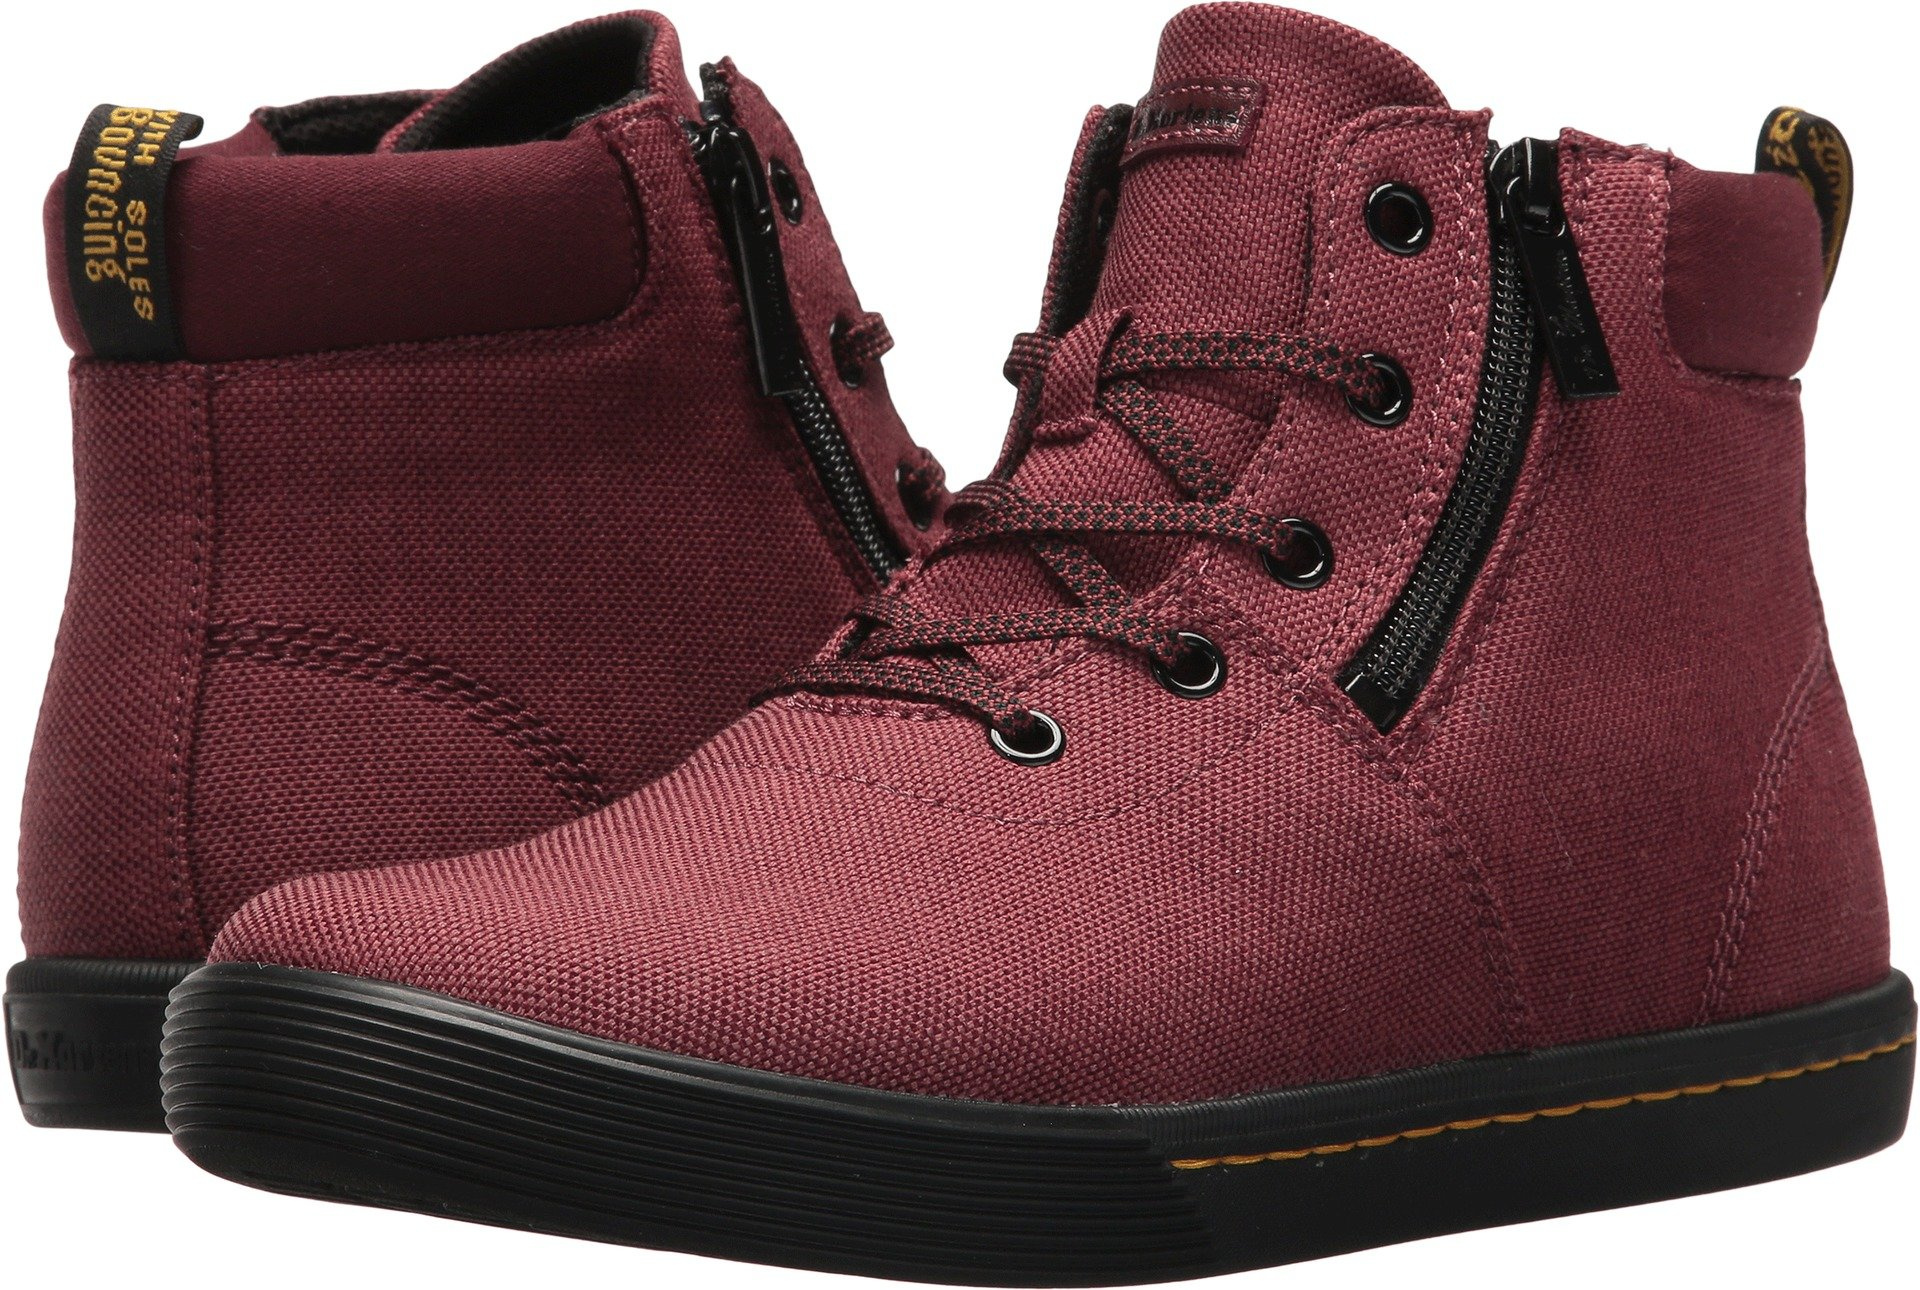 Dr. Martens Women's Maegley Fashion Boot, Cherry Red Woven Textile+Fine Canvas, 7 Medium UK (9 US)